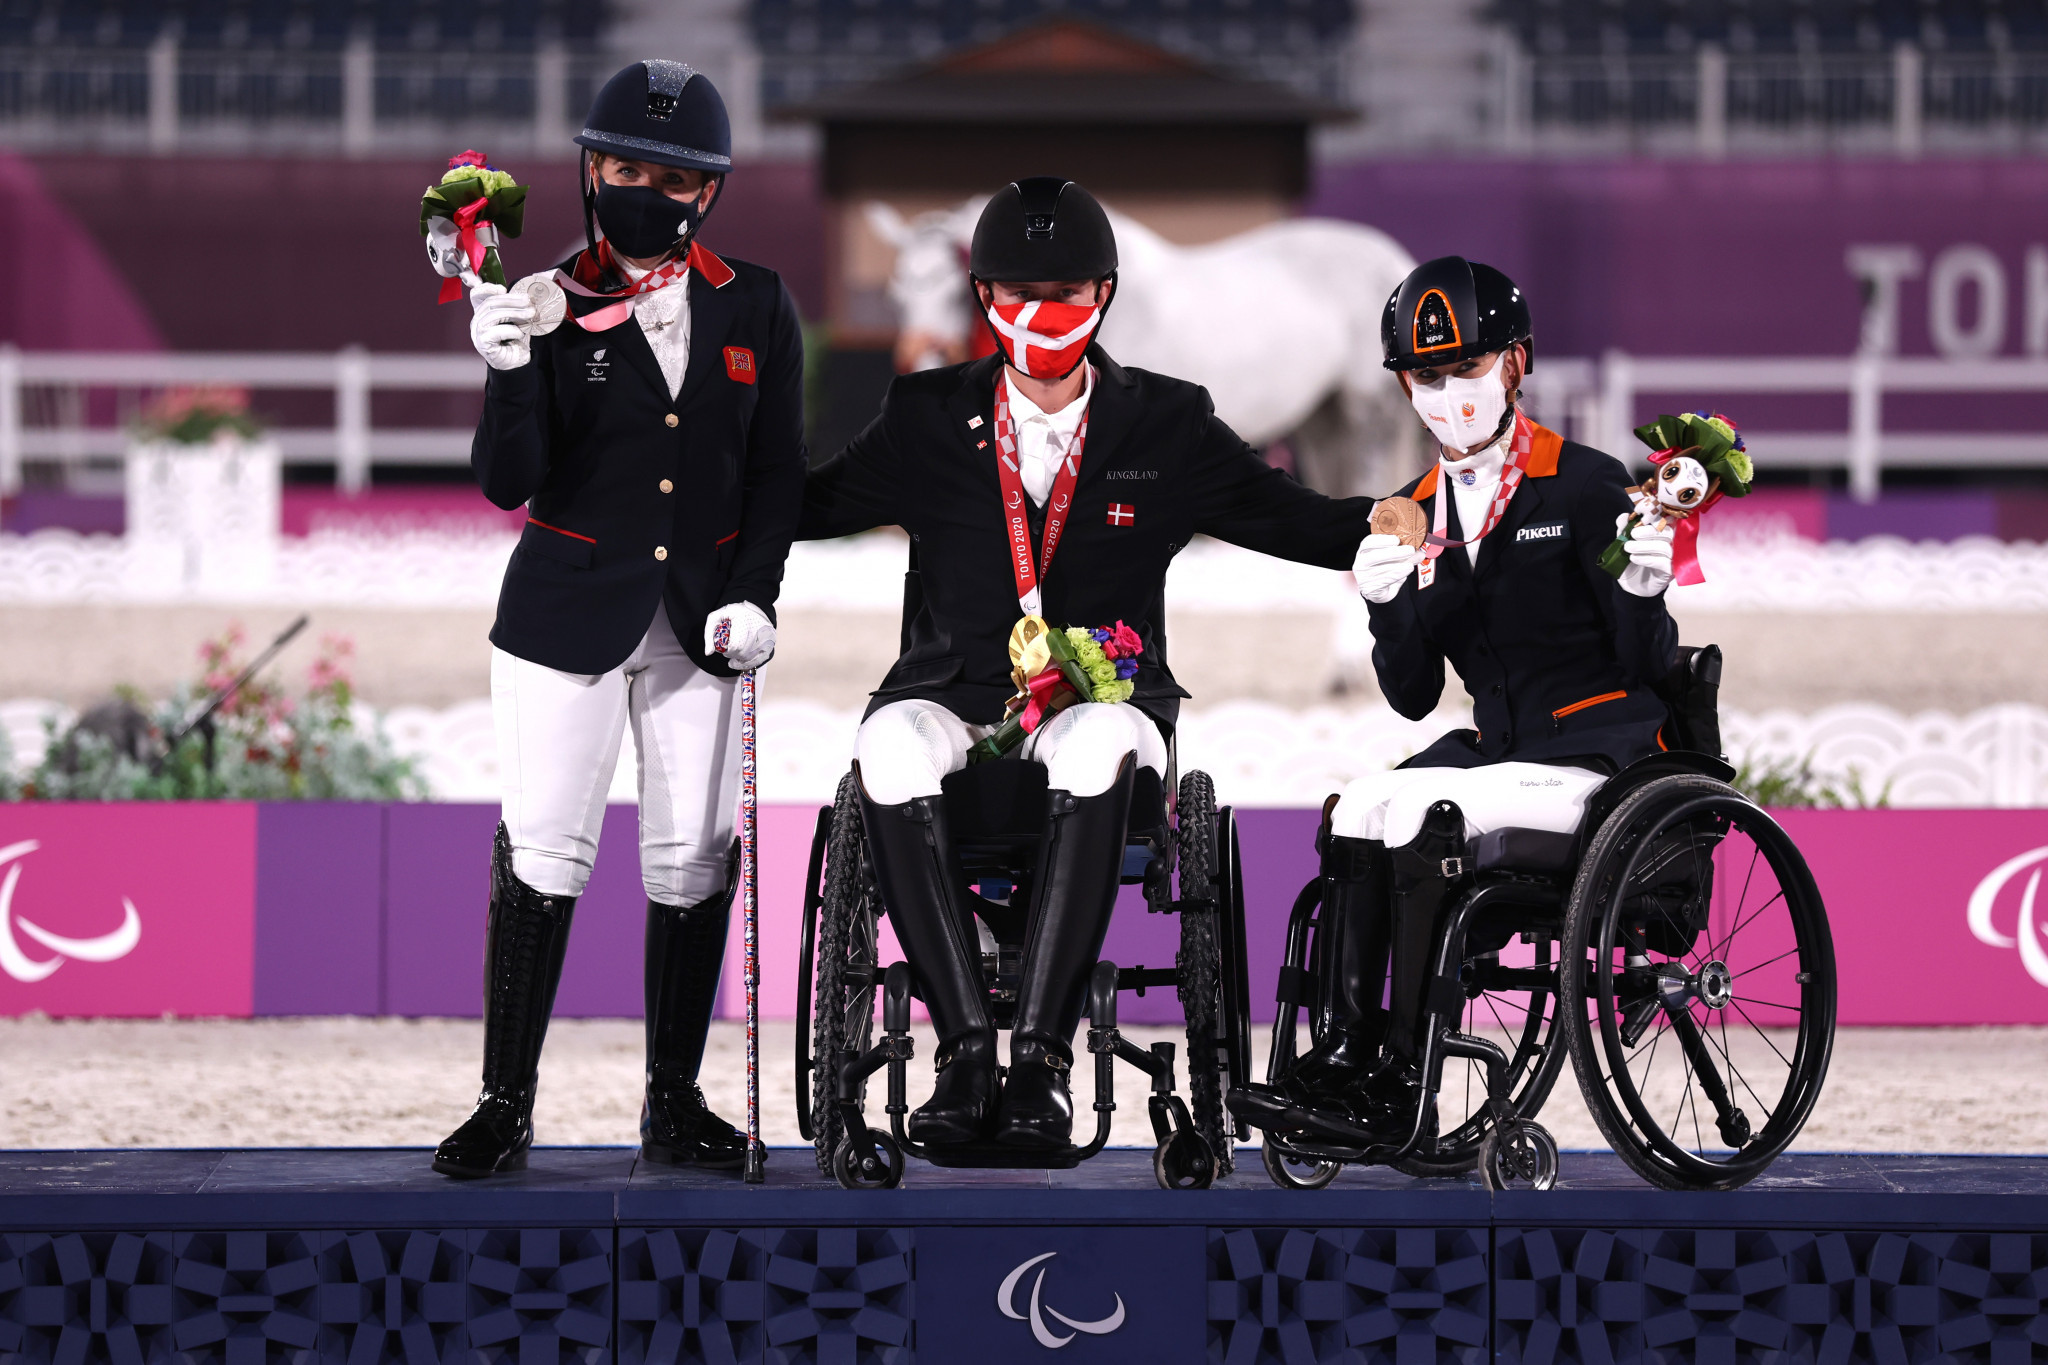 Danish delight as Joergensen wins nation's first gold of Tokyo 2020 Paralympics in dressage